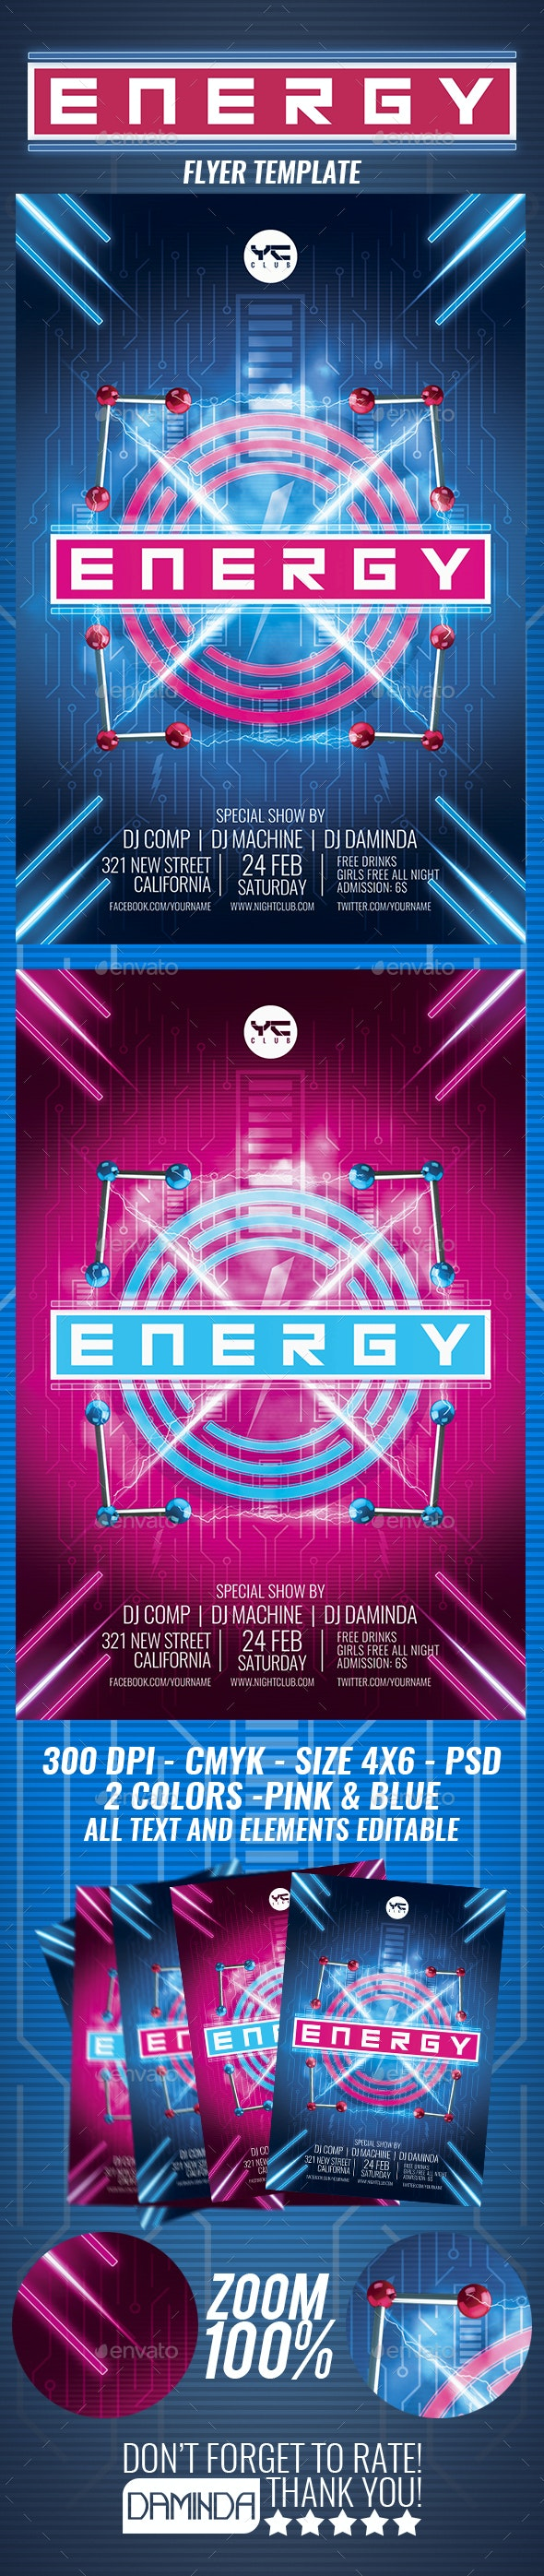 Energy Flyer Template - Clubs & Parties Events